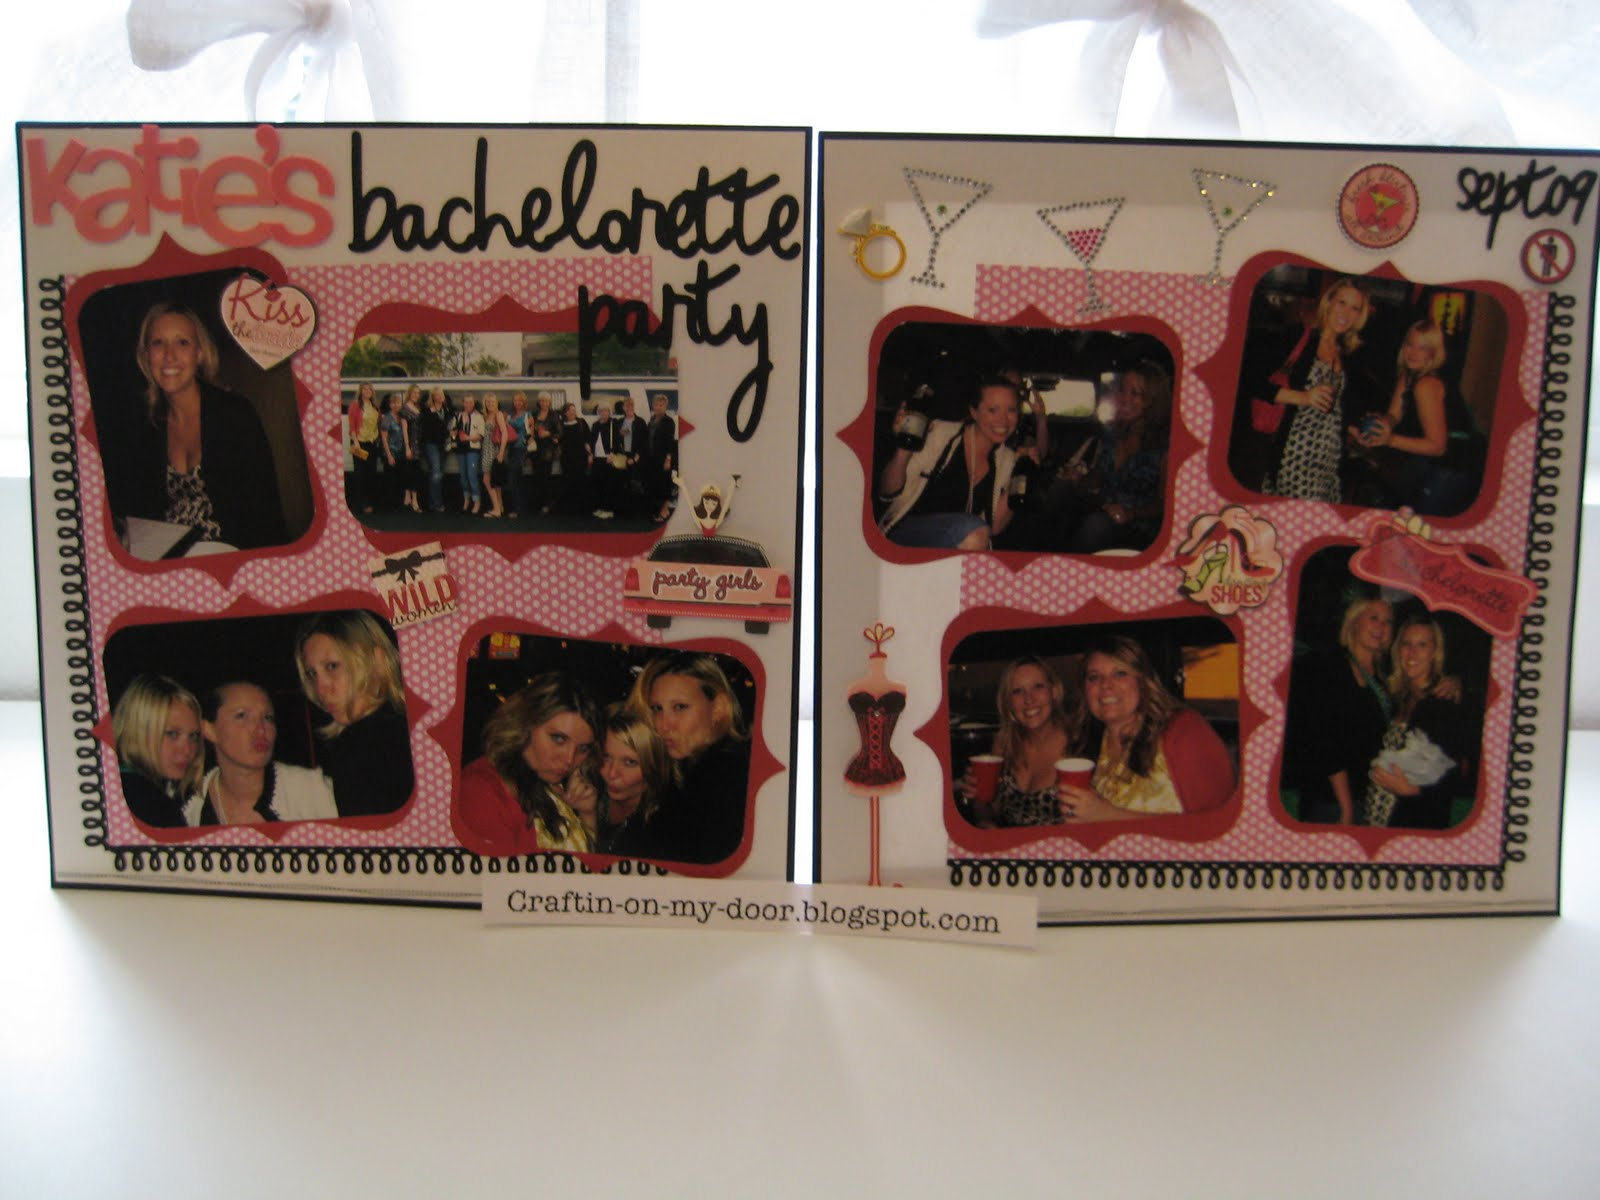 Scrapbook ideas black background -  The Background Paper Sparkly White From Recollections The Riding Hood Red And Black Are From Stampin Up Pink Polka Dot Me And My Big Idea Which Were